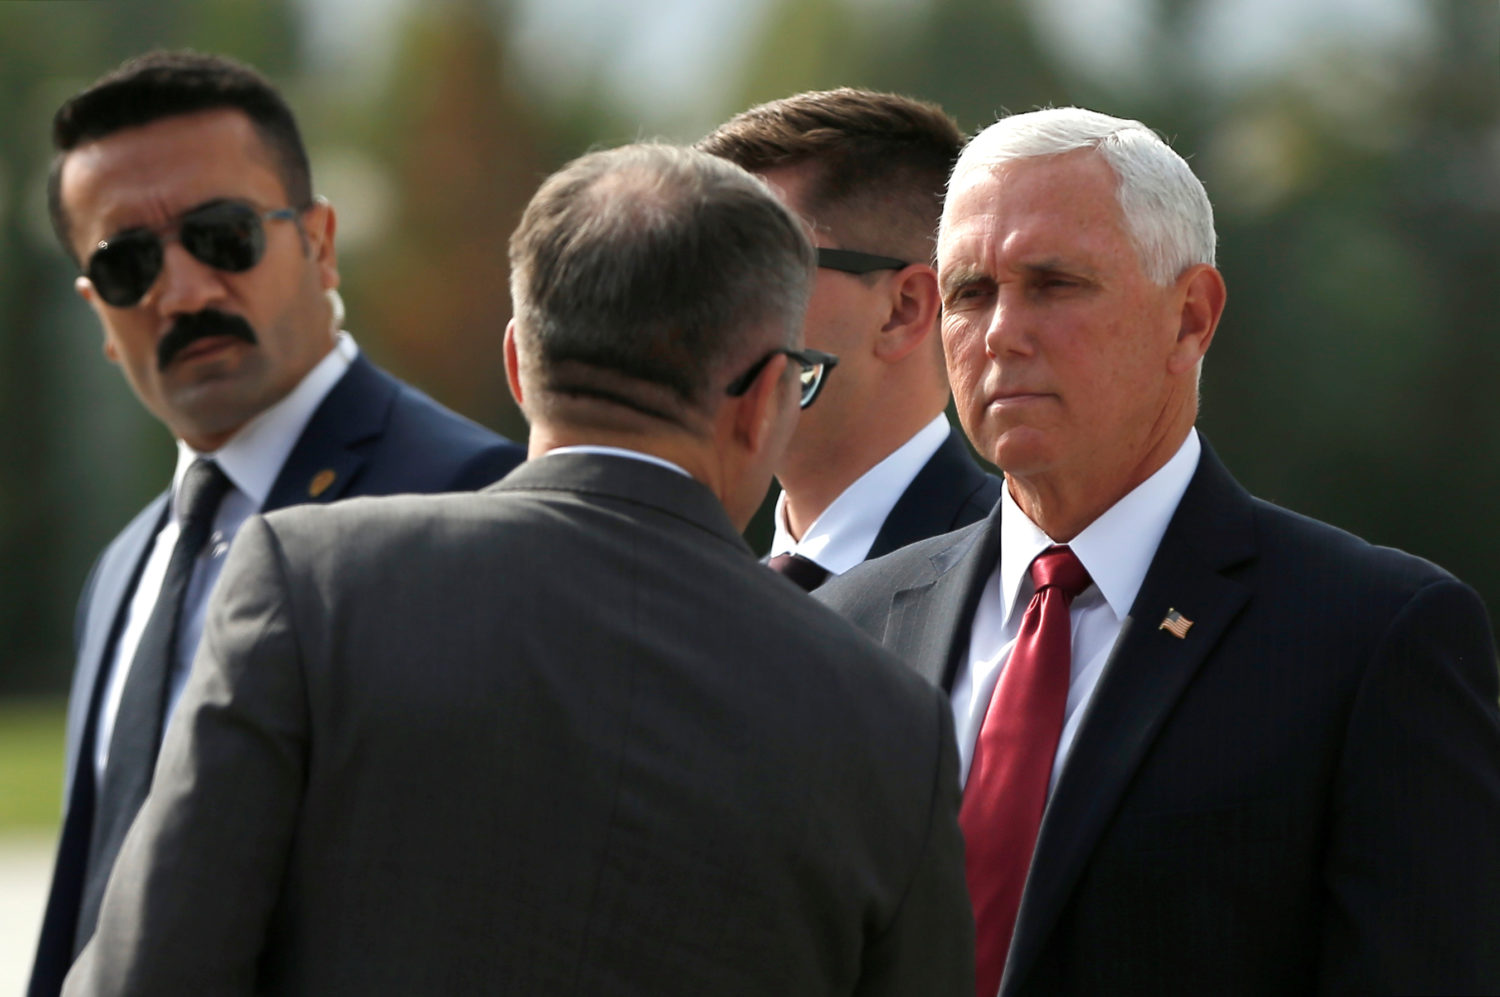 U.S. Vice President Mike Pence arrives at Esenboga International Airport in Ankara, Turkey, October 17, 2019. REUTERS/Huseyin Aldemir